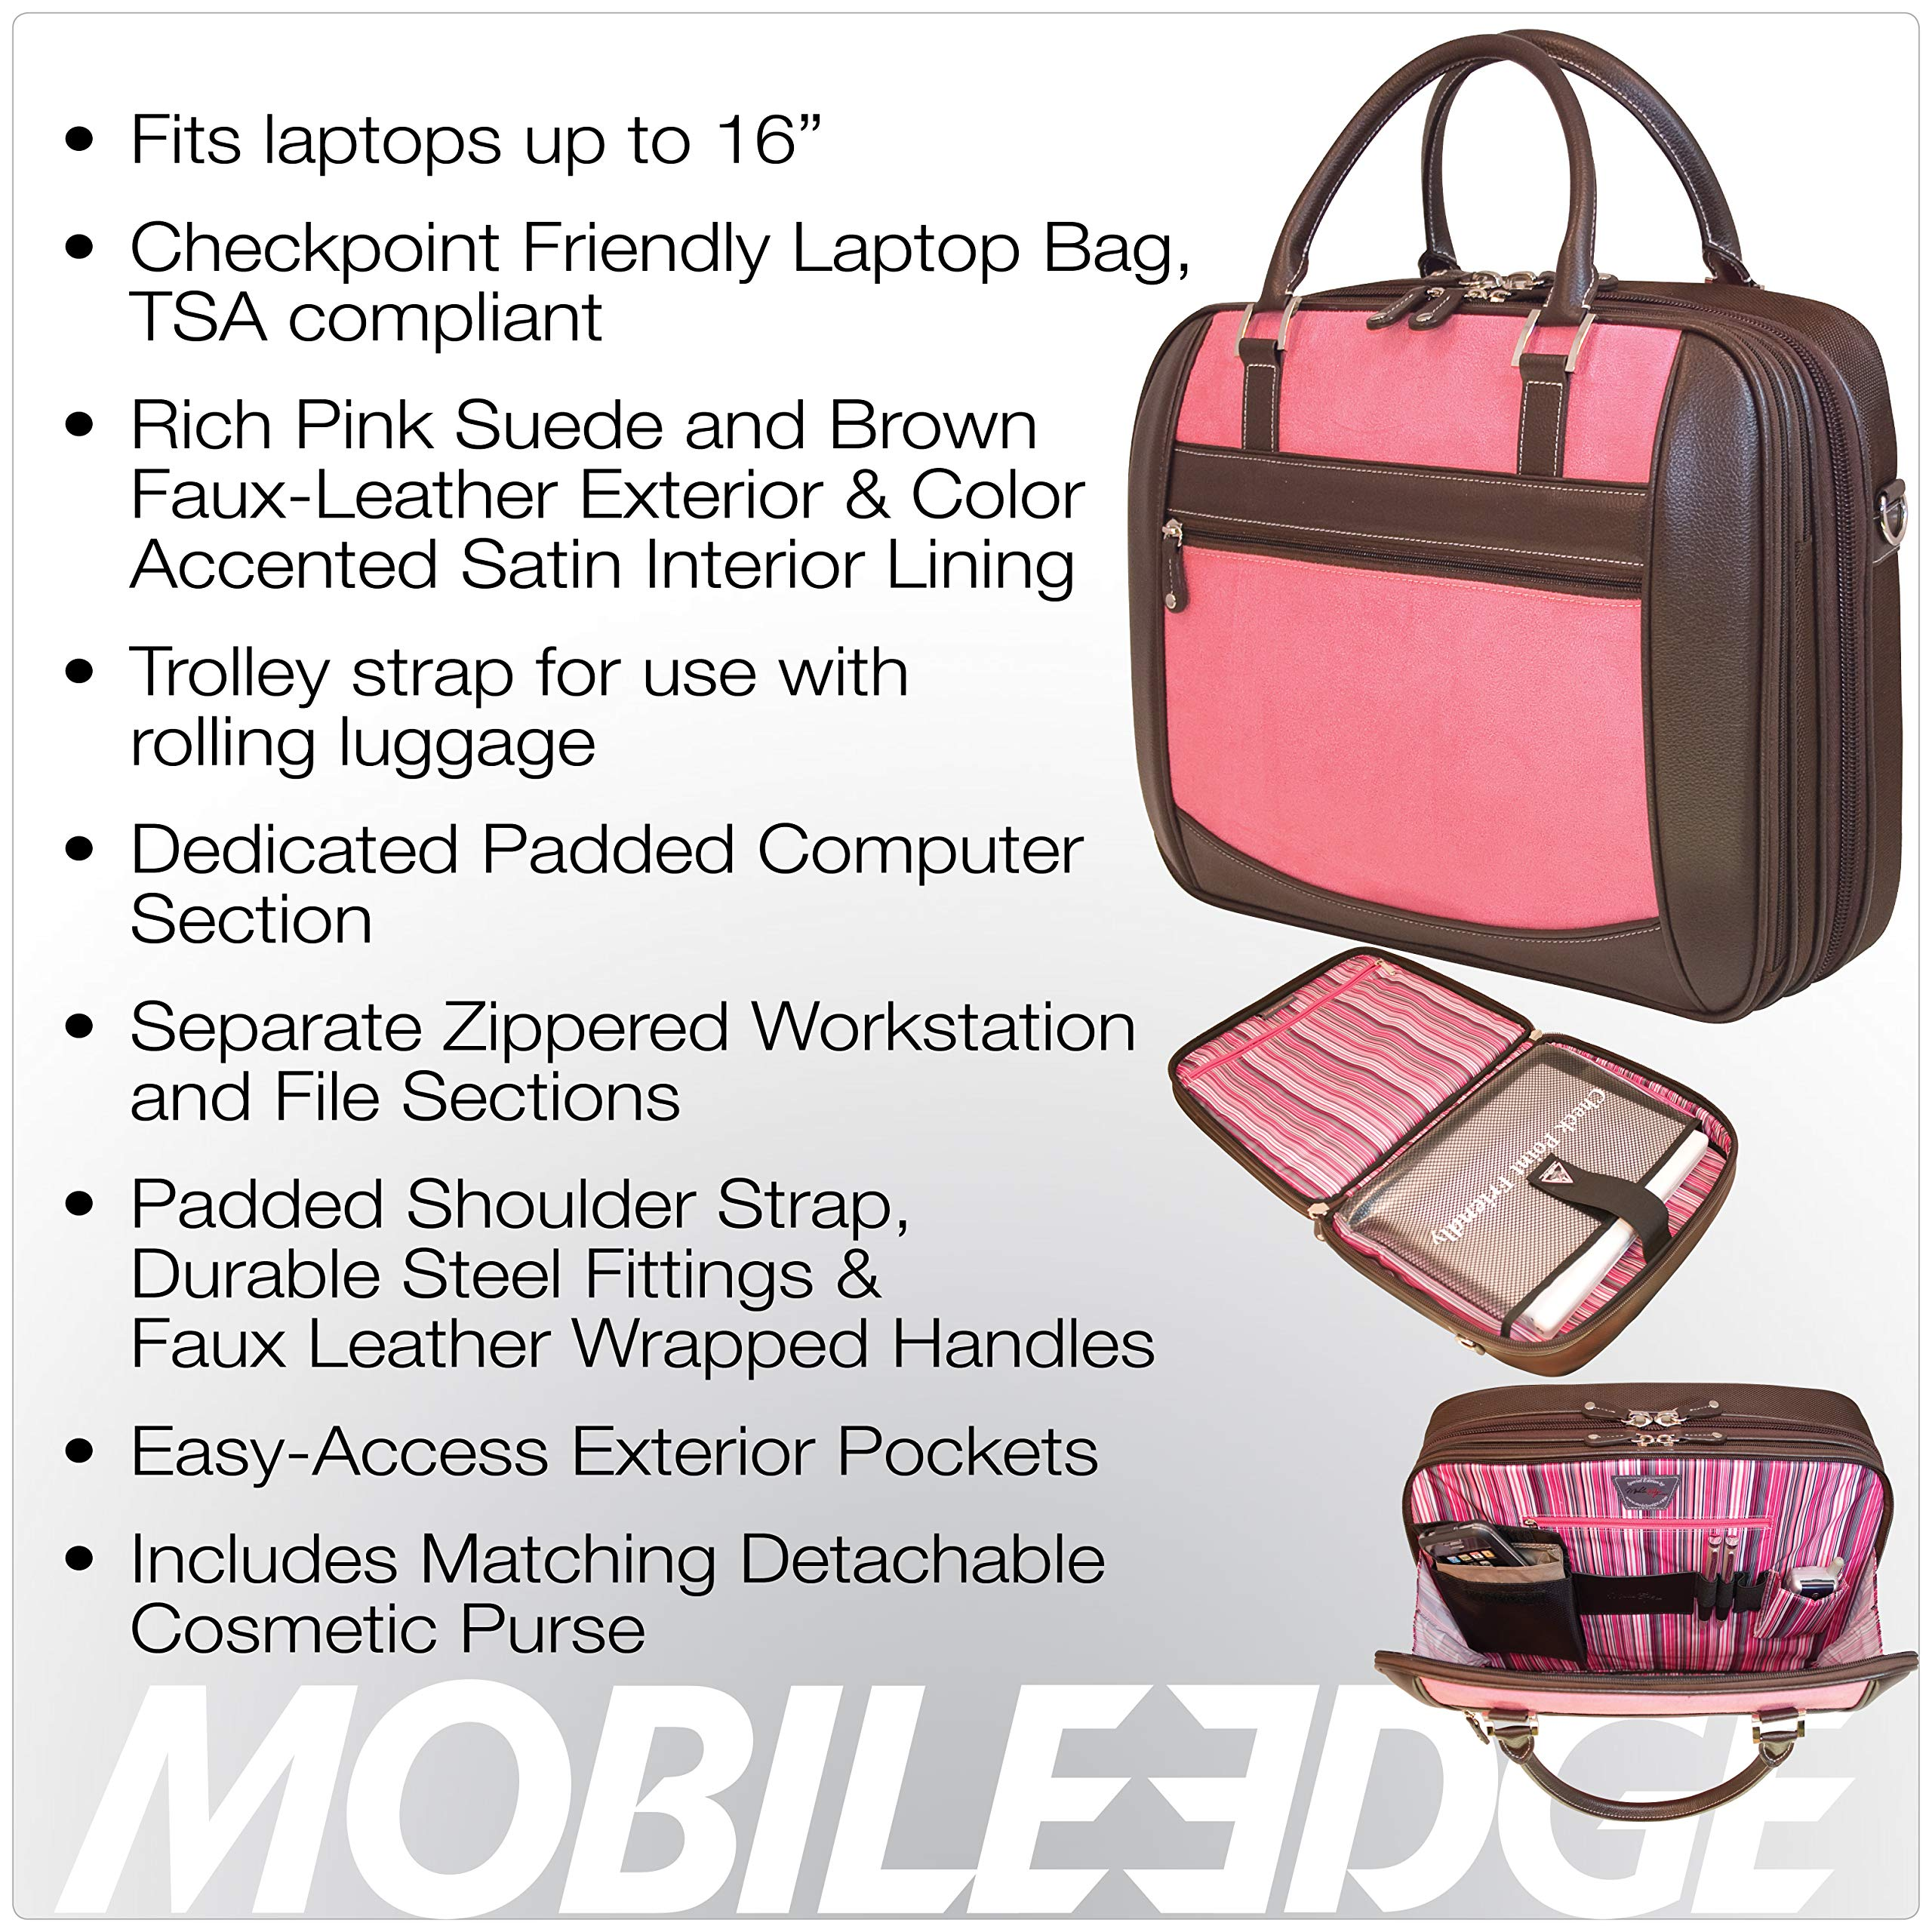 Mobile Edge Women's Black w/Pink, Checkpoint Friendly Element Laptop Briefcase 16 Inch PC, 17 Inch MacBook, Business, Travel MESFEBX by Mobile Edge (Image #7)